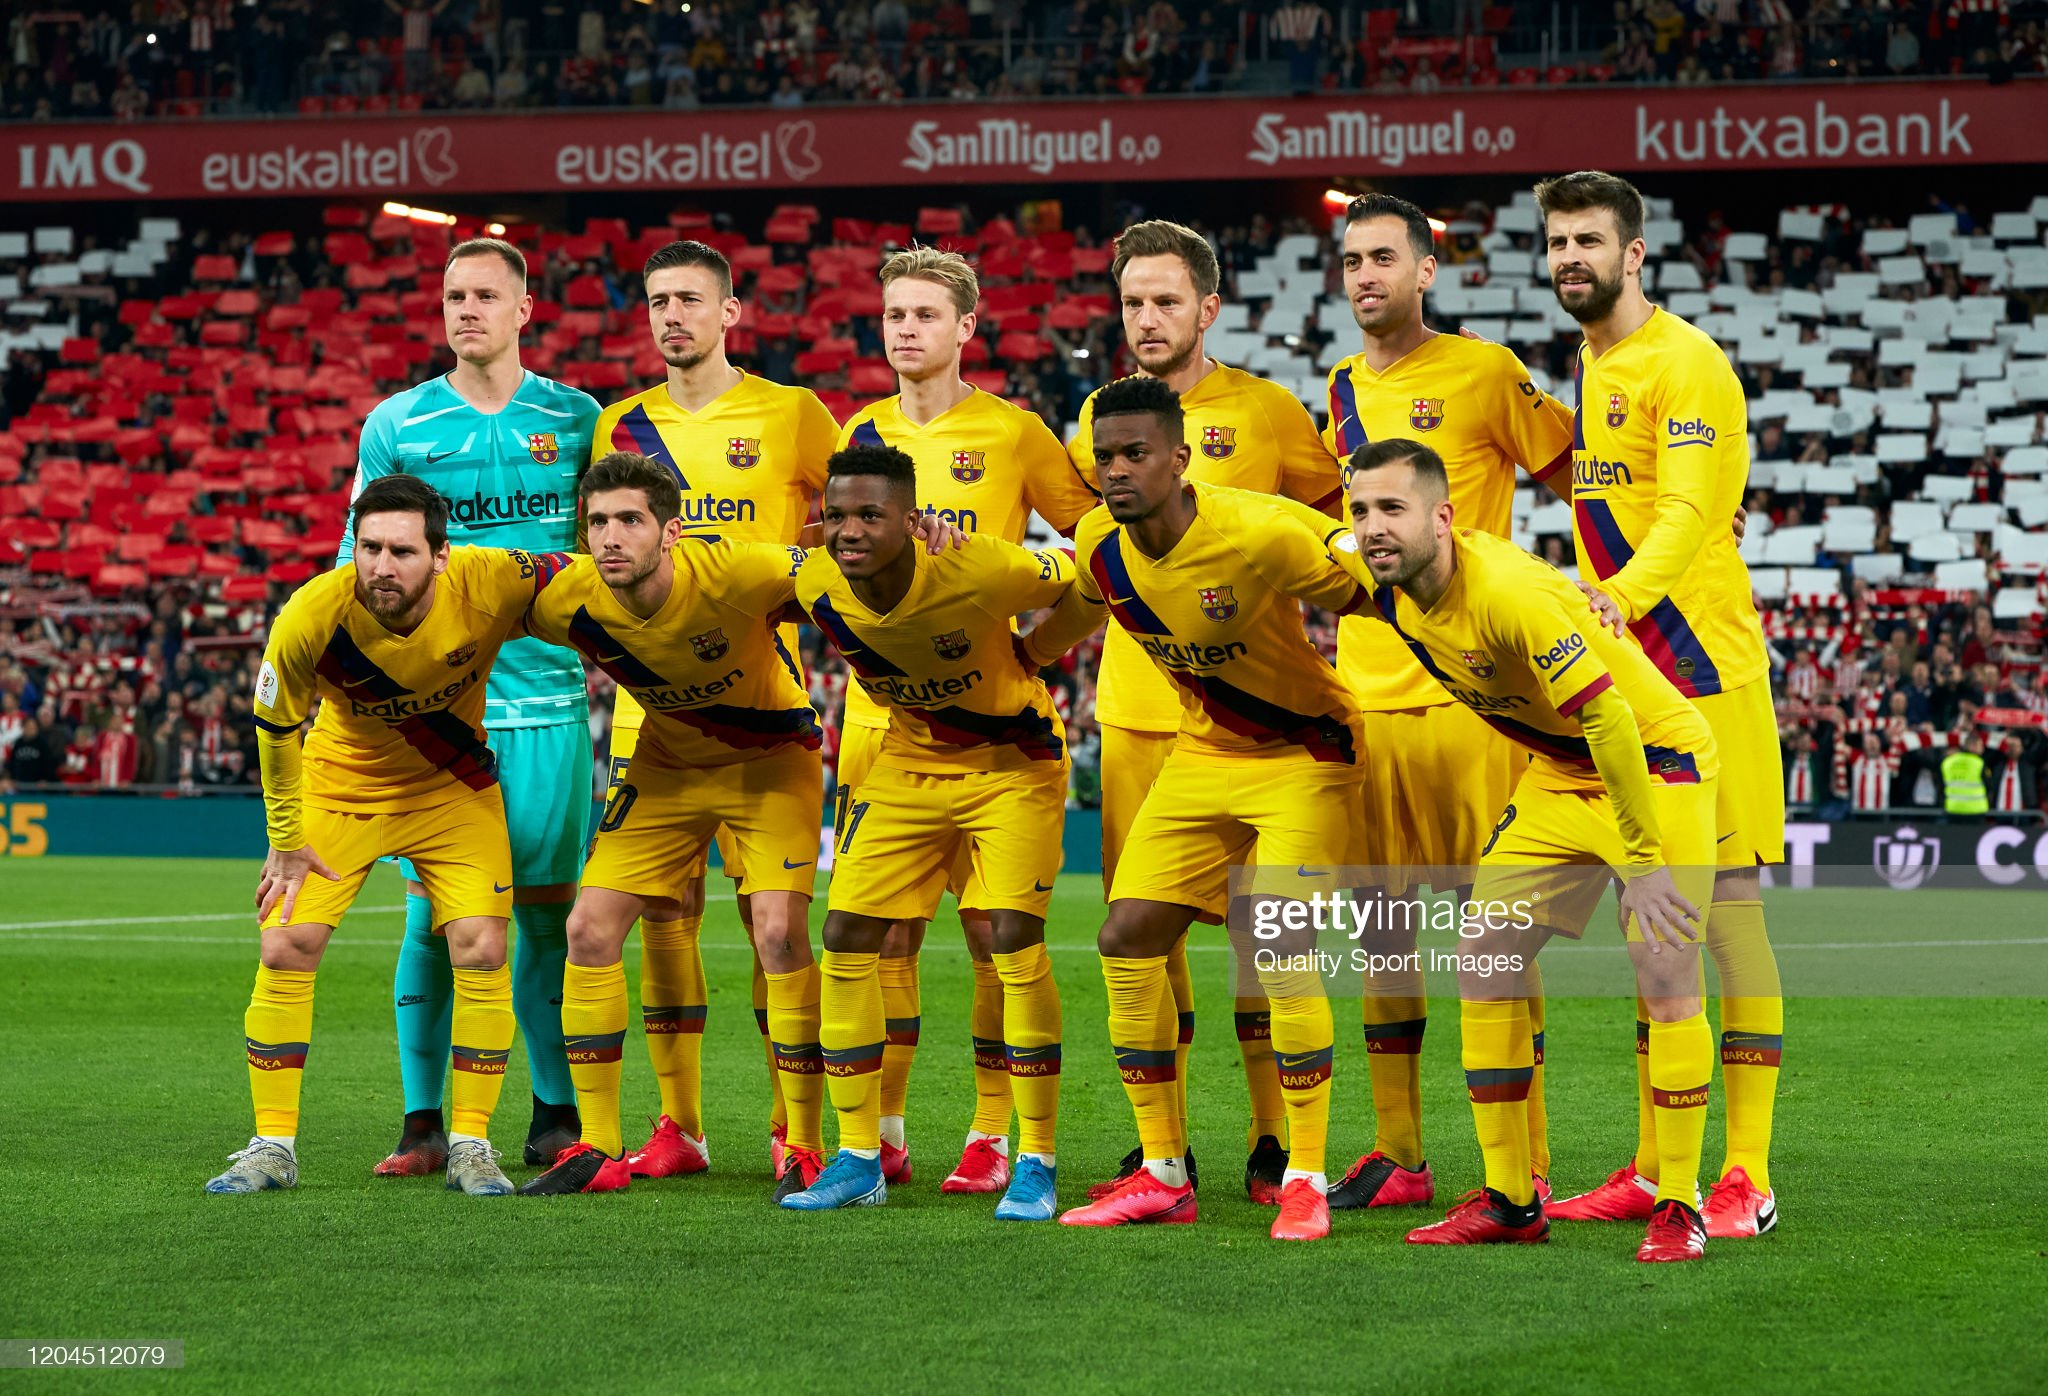 the-barcelona-team-line-up-for-a-photo-prior-to-kick-off-during-the-picture-id1204512079?s=2048x2048